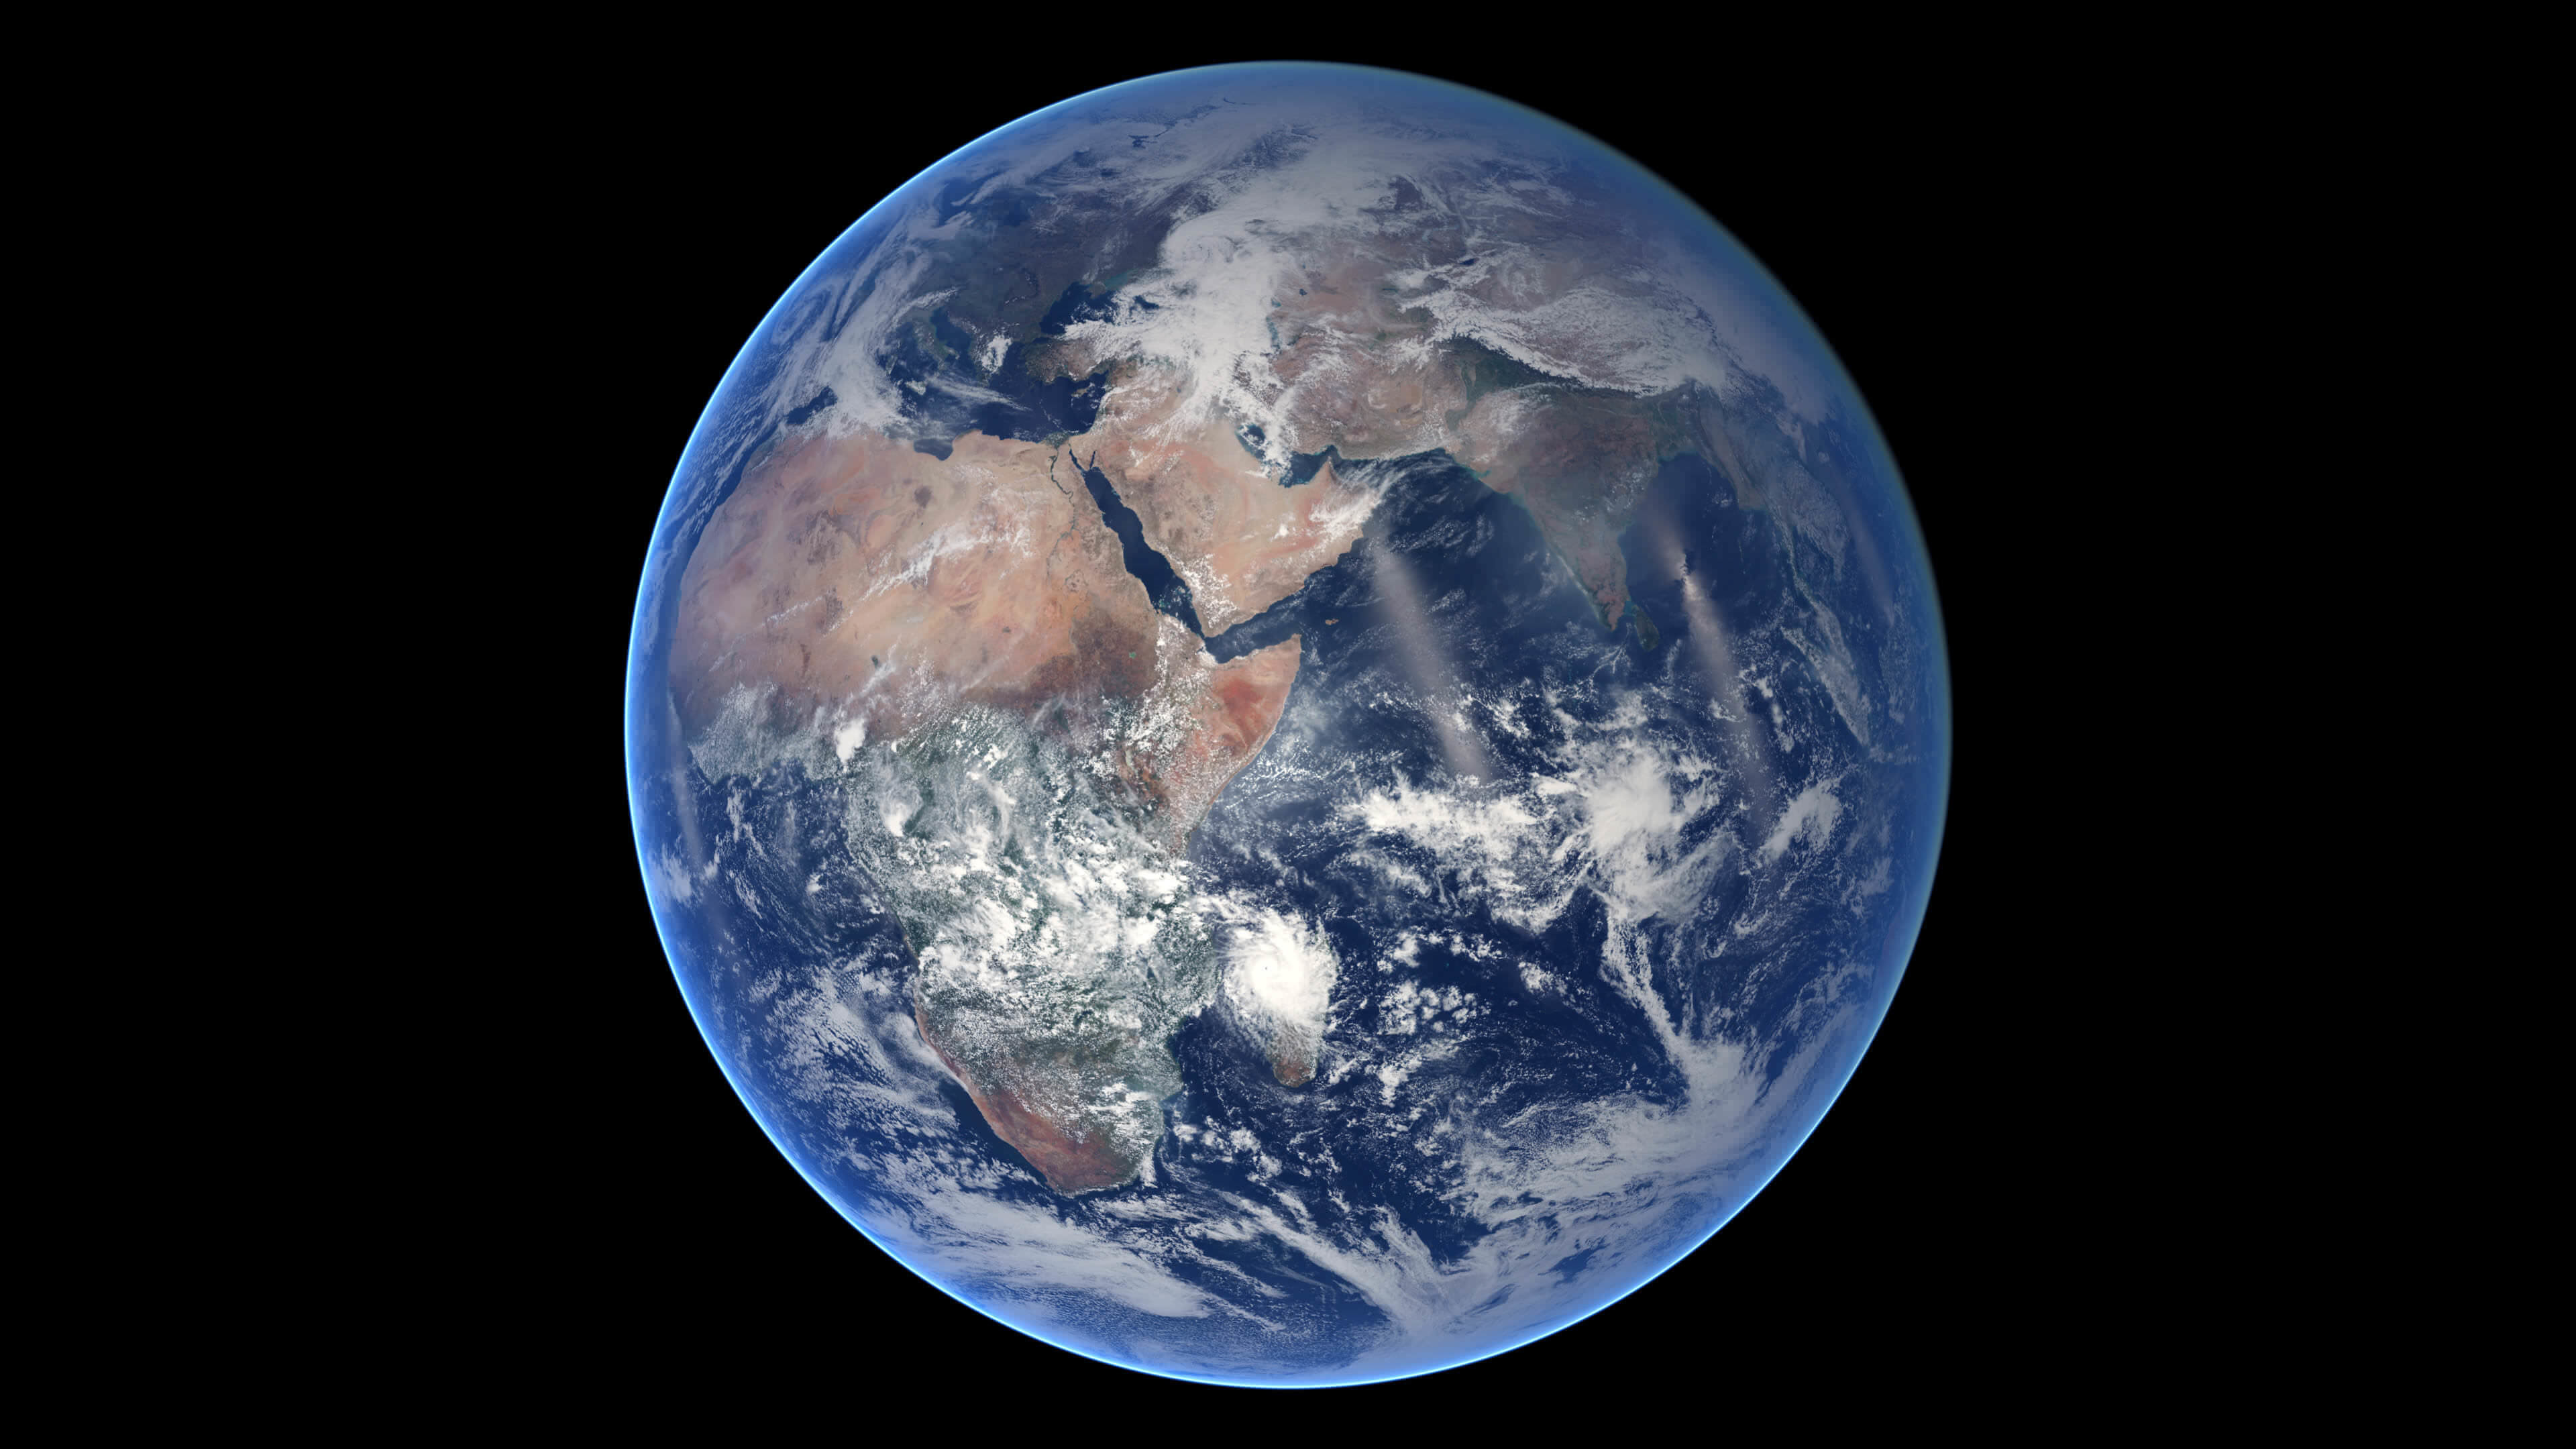 the blue marble spins-nasa portrait of earth 4k wallpaper